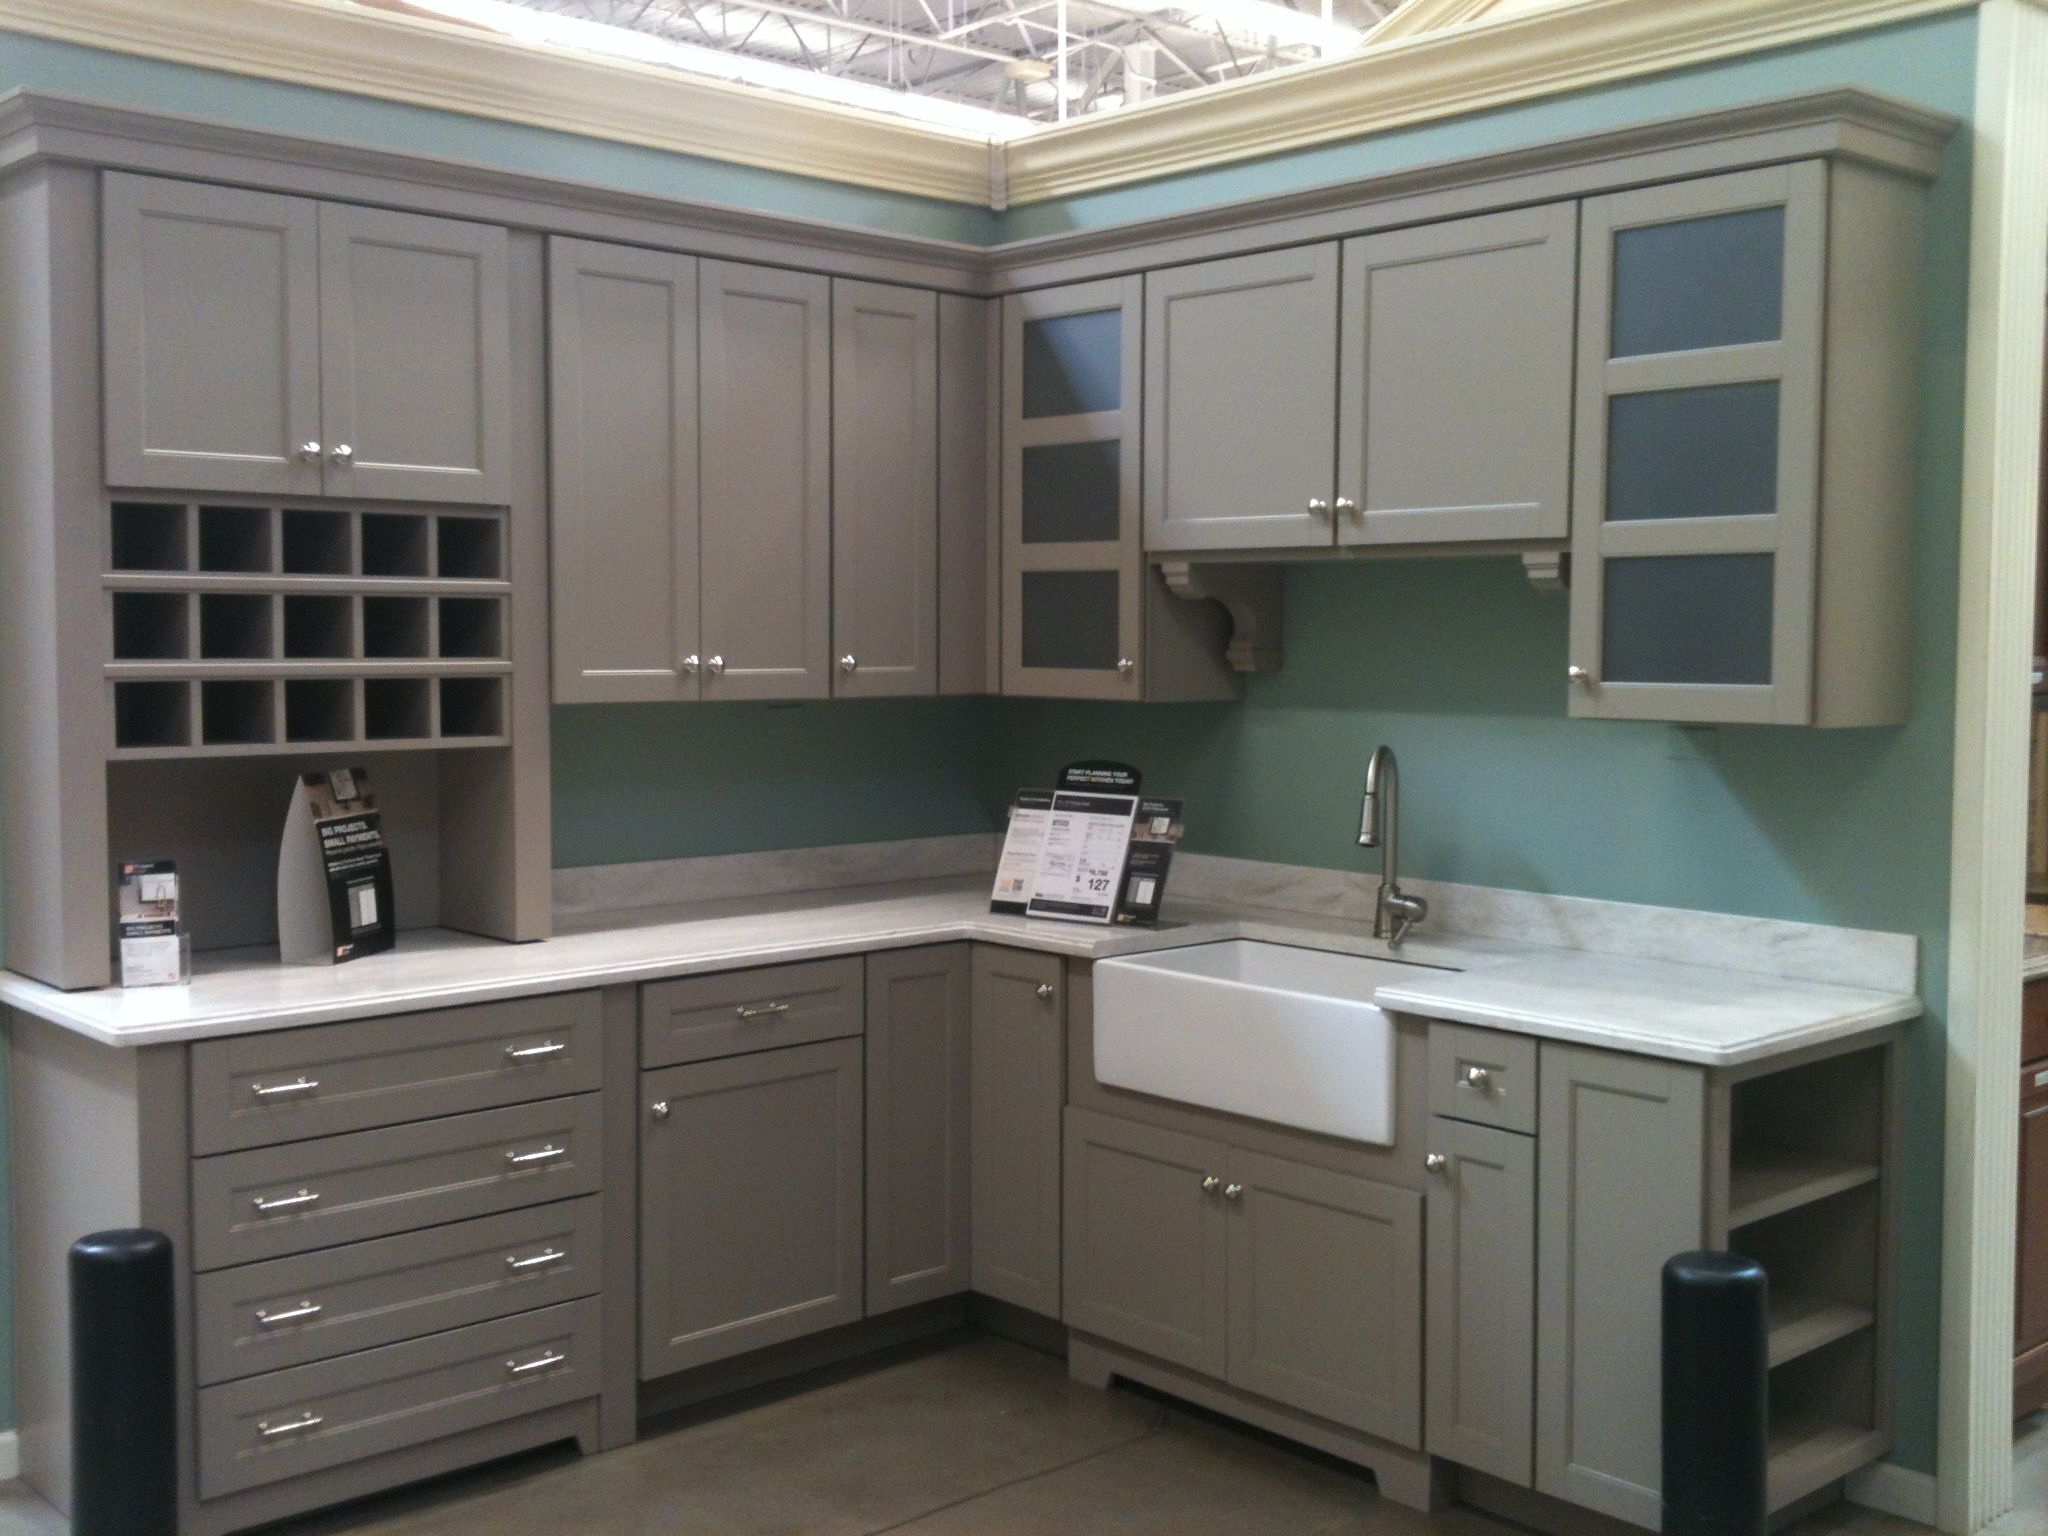 Martha stewart cabinets from home depot like the shelves for Home depot kitchen cabinets design